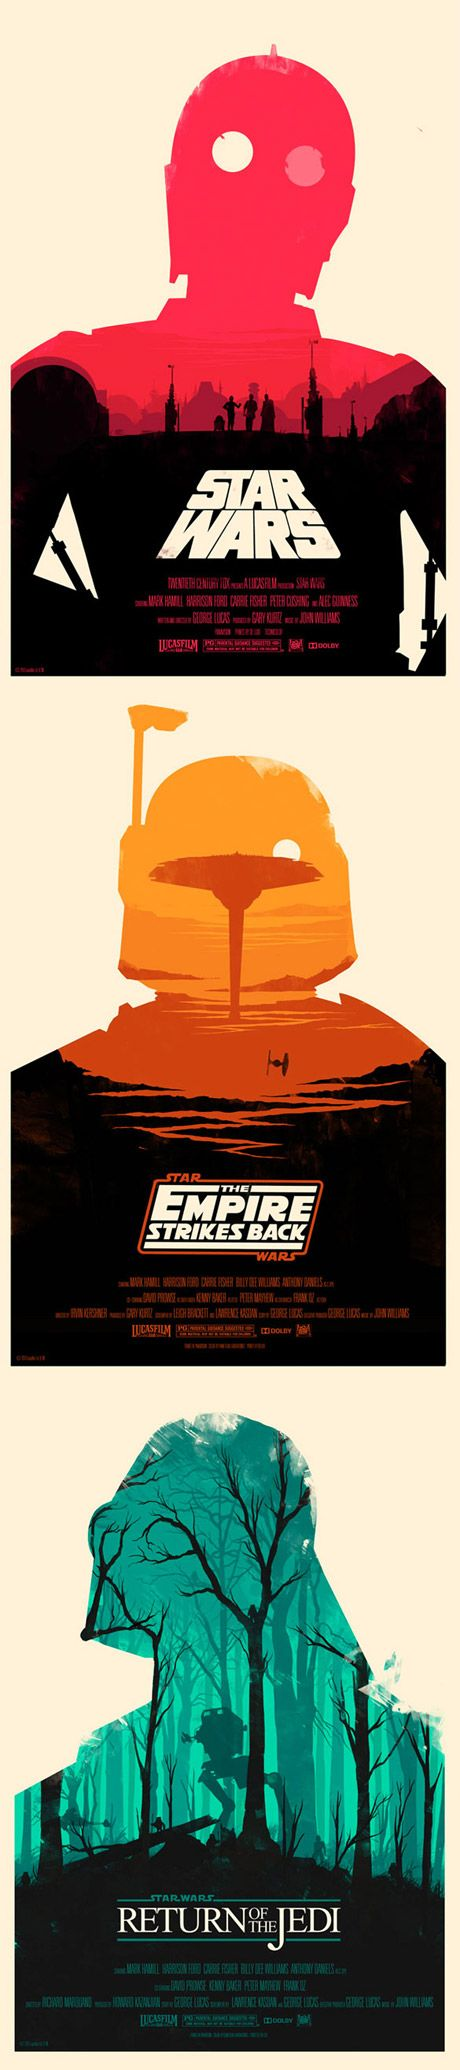 These limited edition Star Wars posters would look awesome in the theater room. #starwars